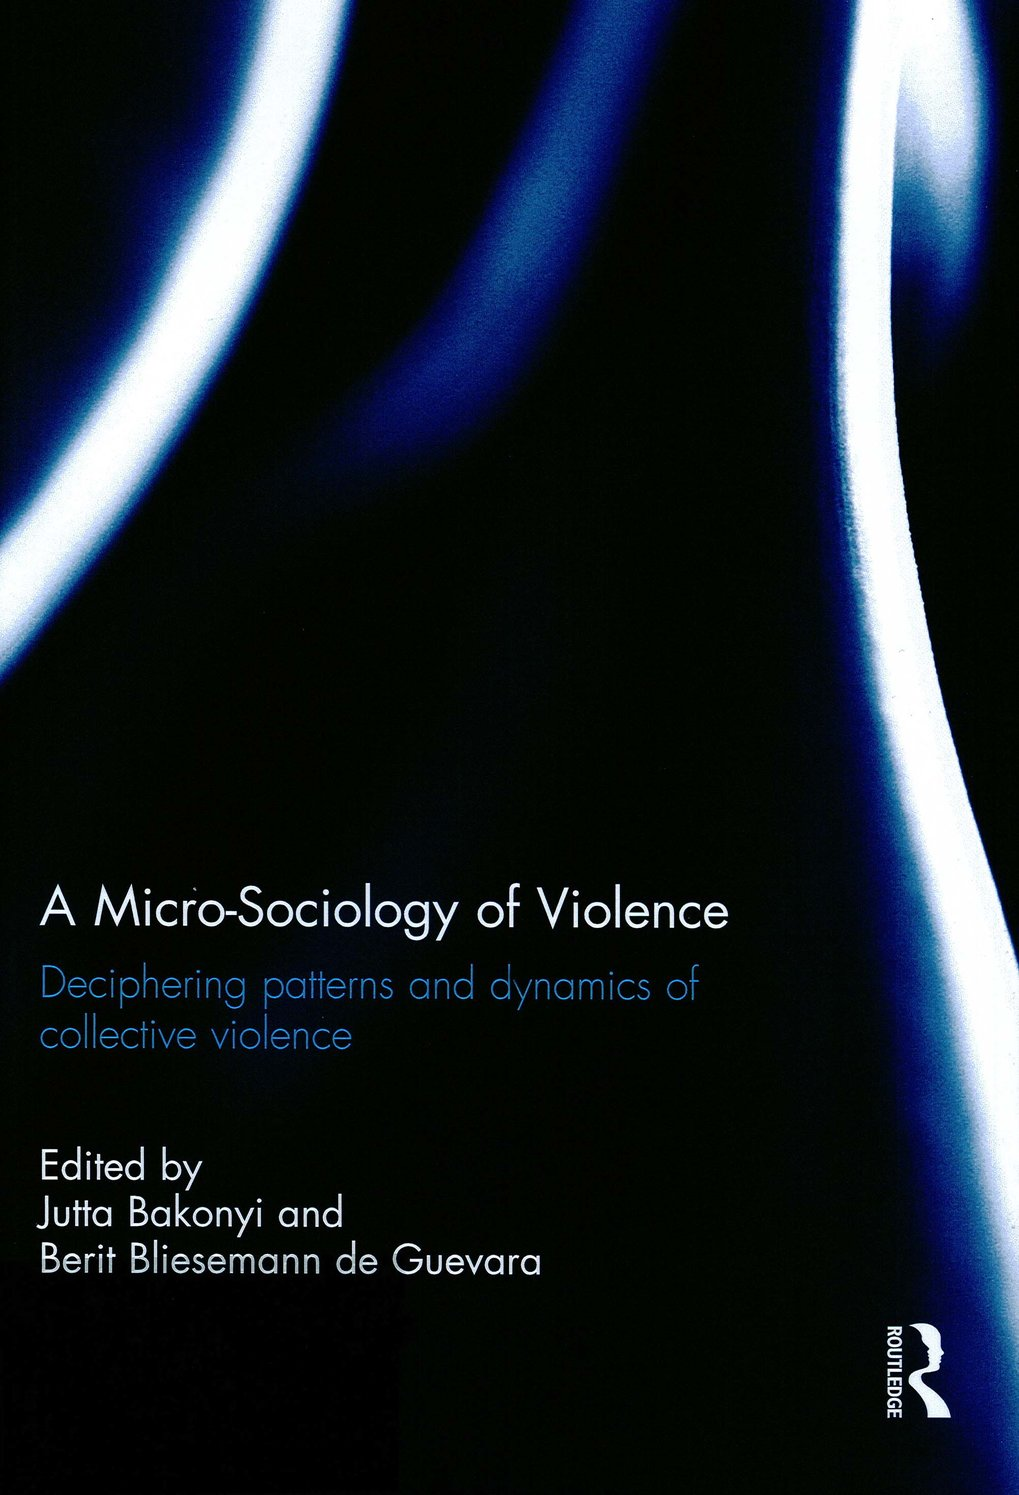 A Micro-Sociology of Violence. Deciphering patterns and dynamics of collective violence